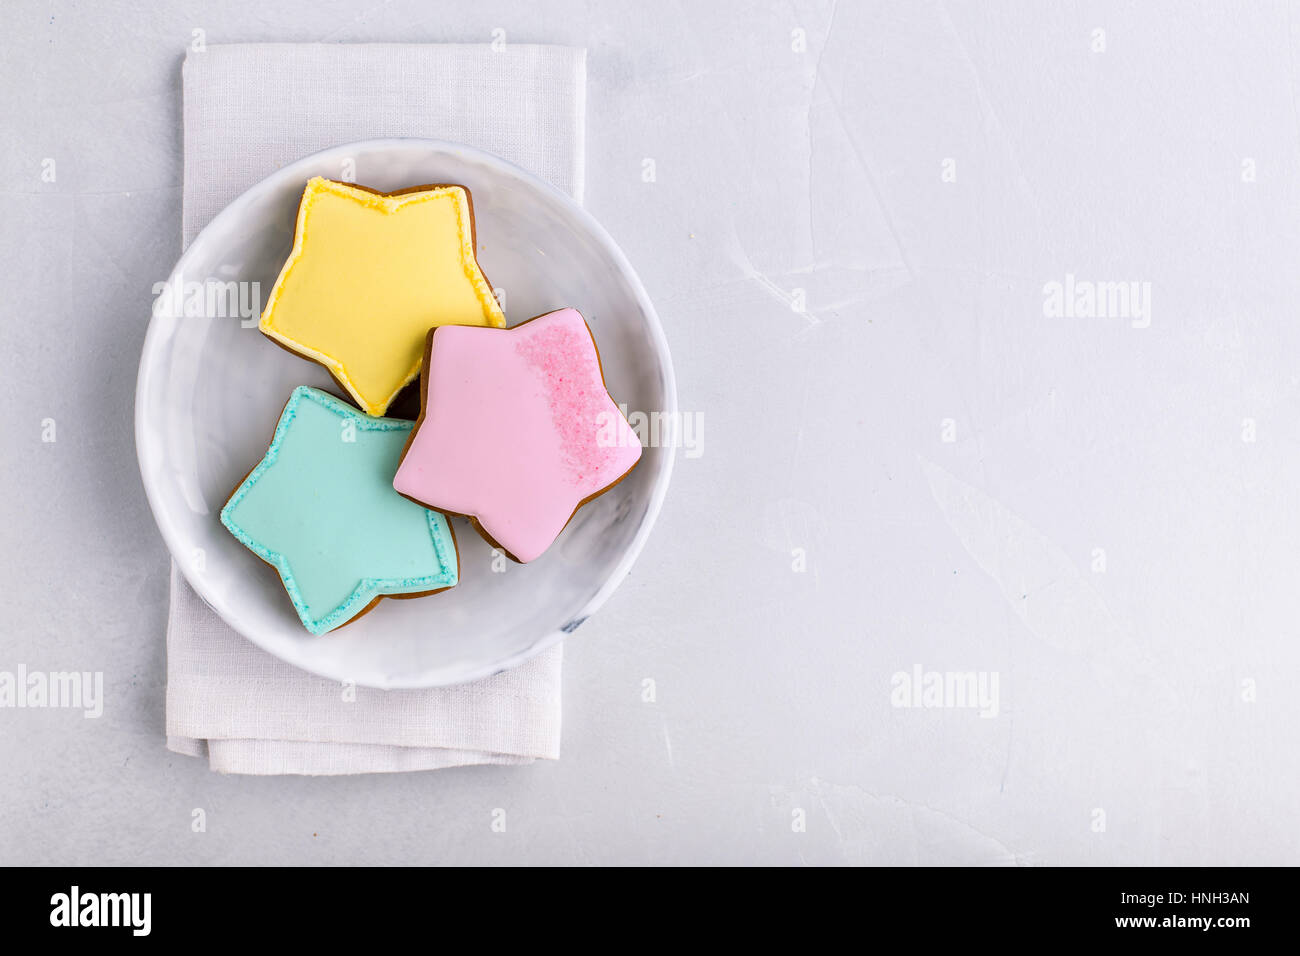 Star shaped cookies in three various colors on plate shot from above - Stock Image